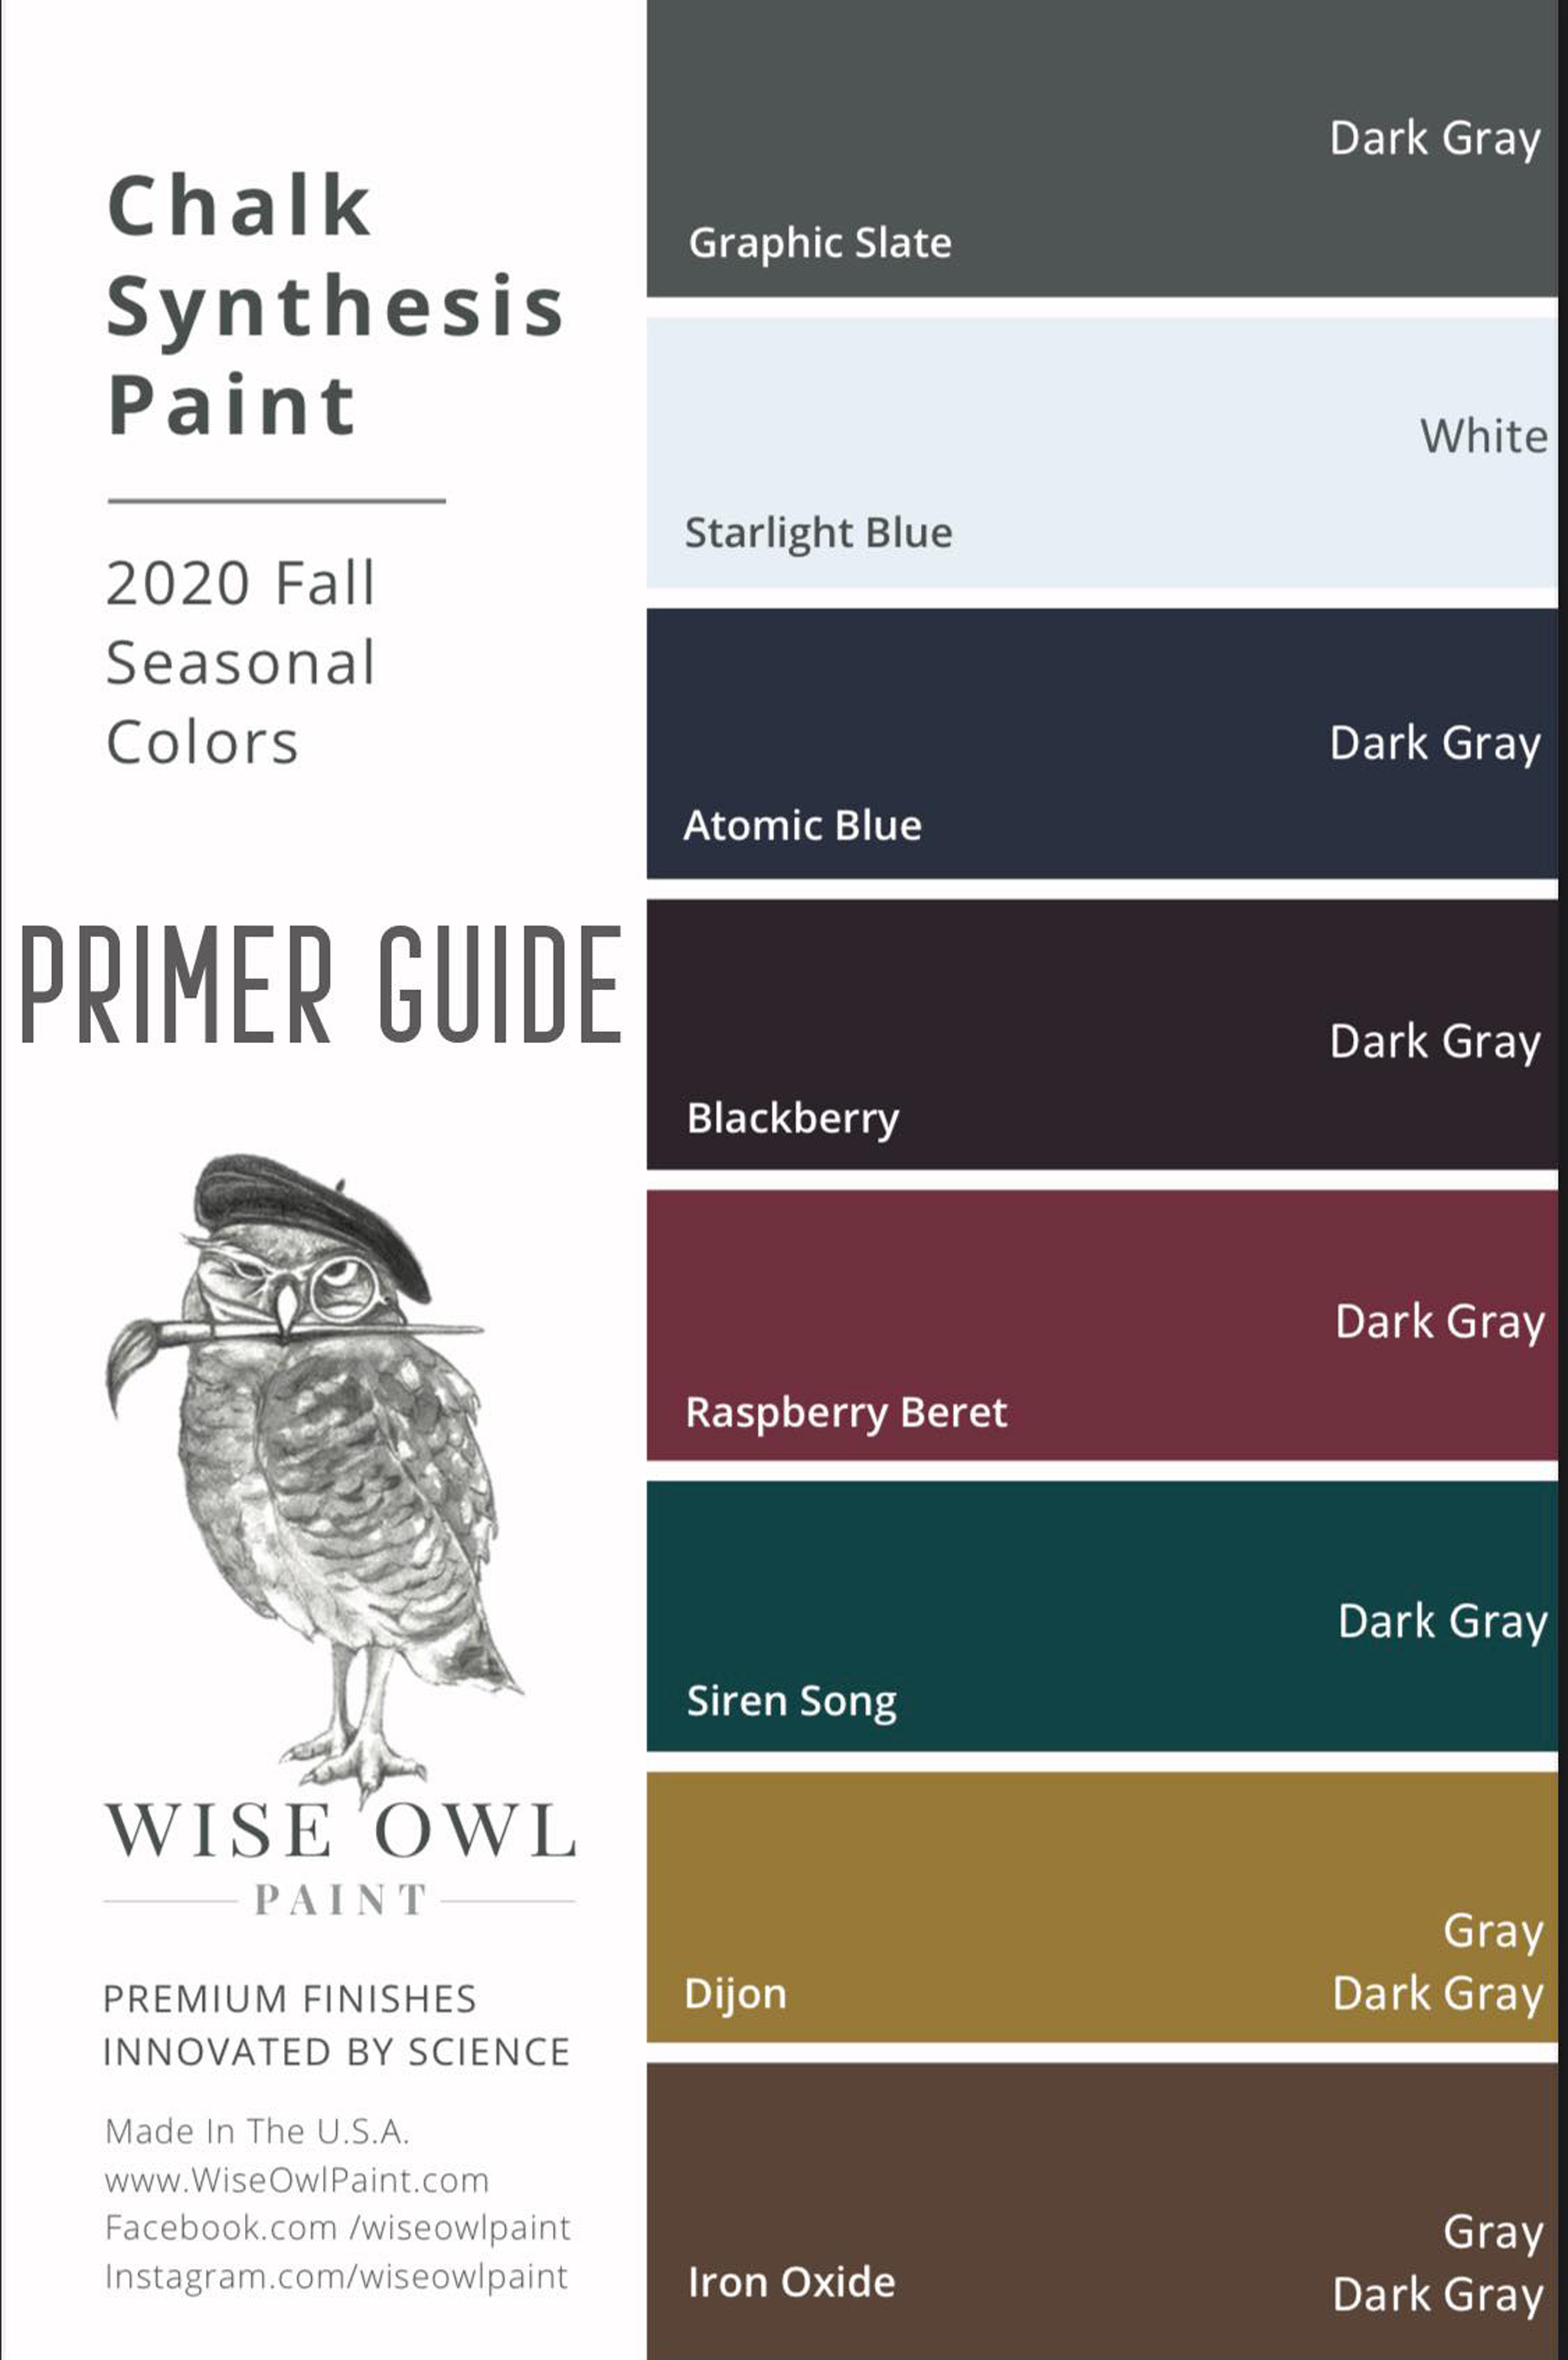 Wise Owl Paint color chart with which primer you should use.